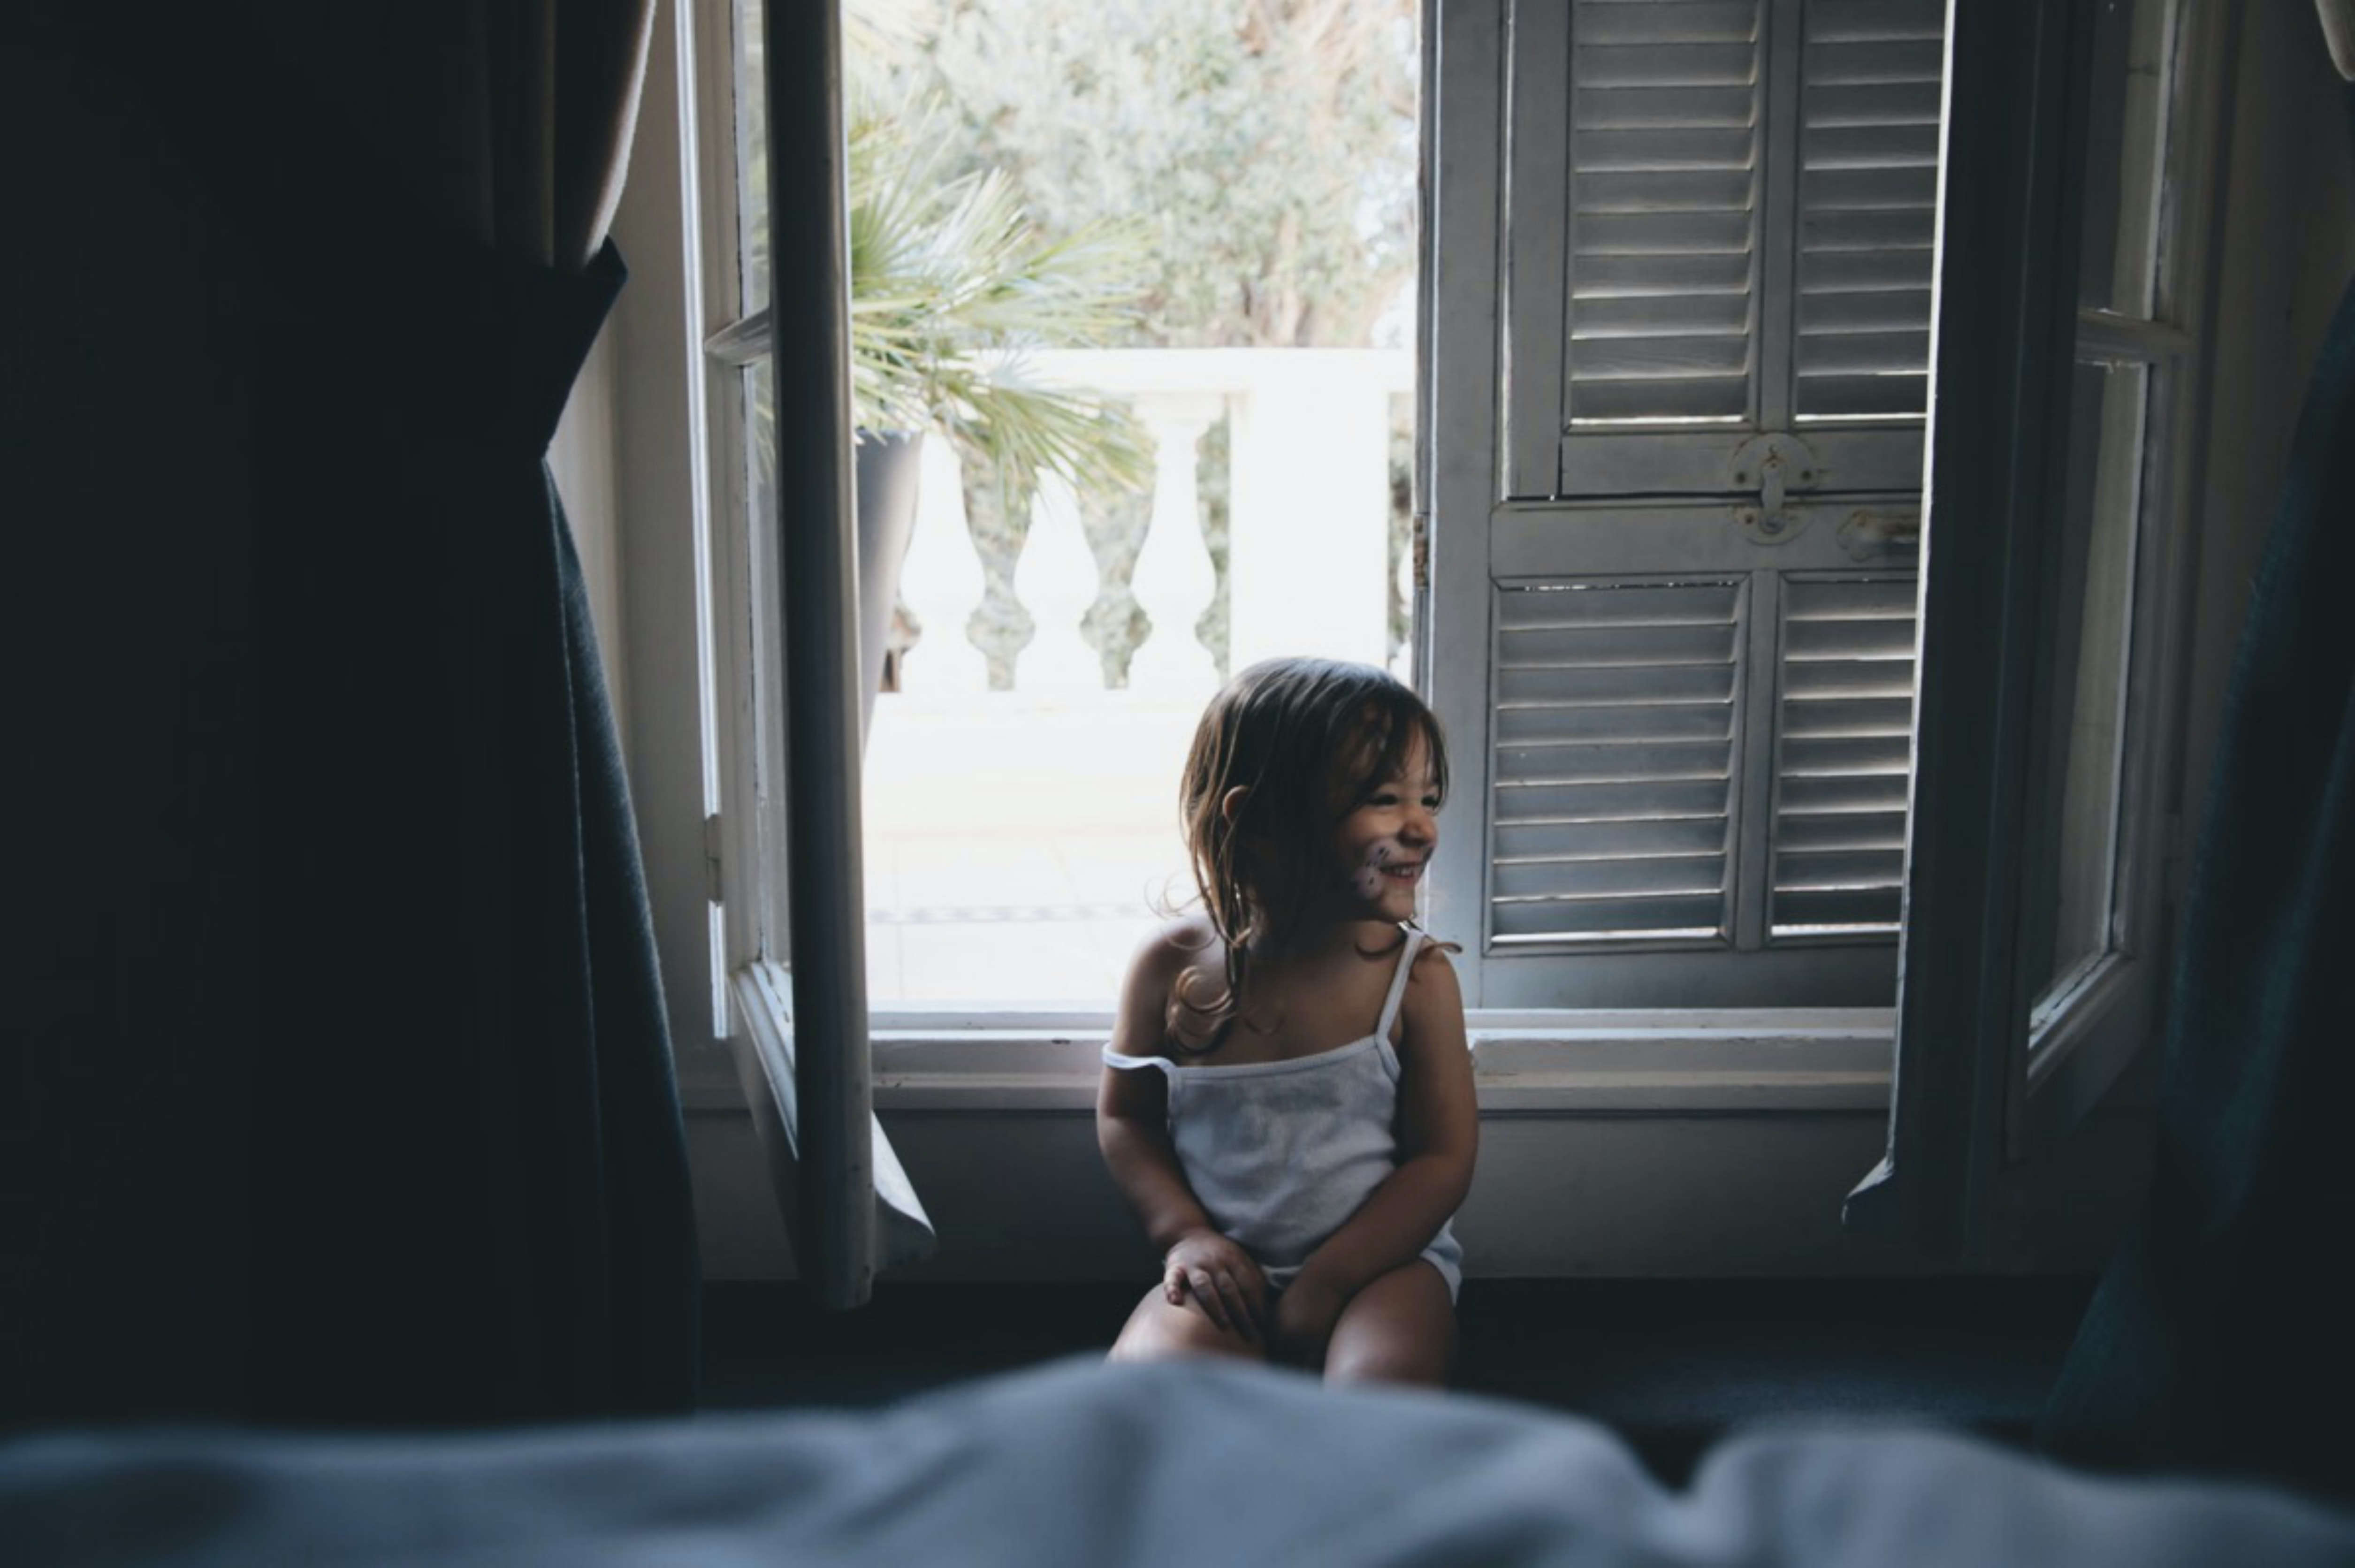 girl sitting by the window during daytime